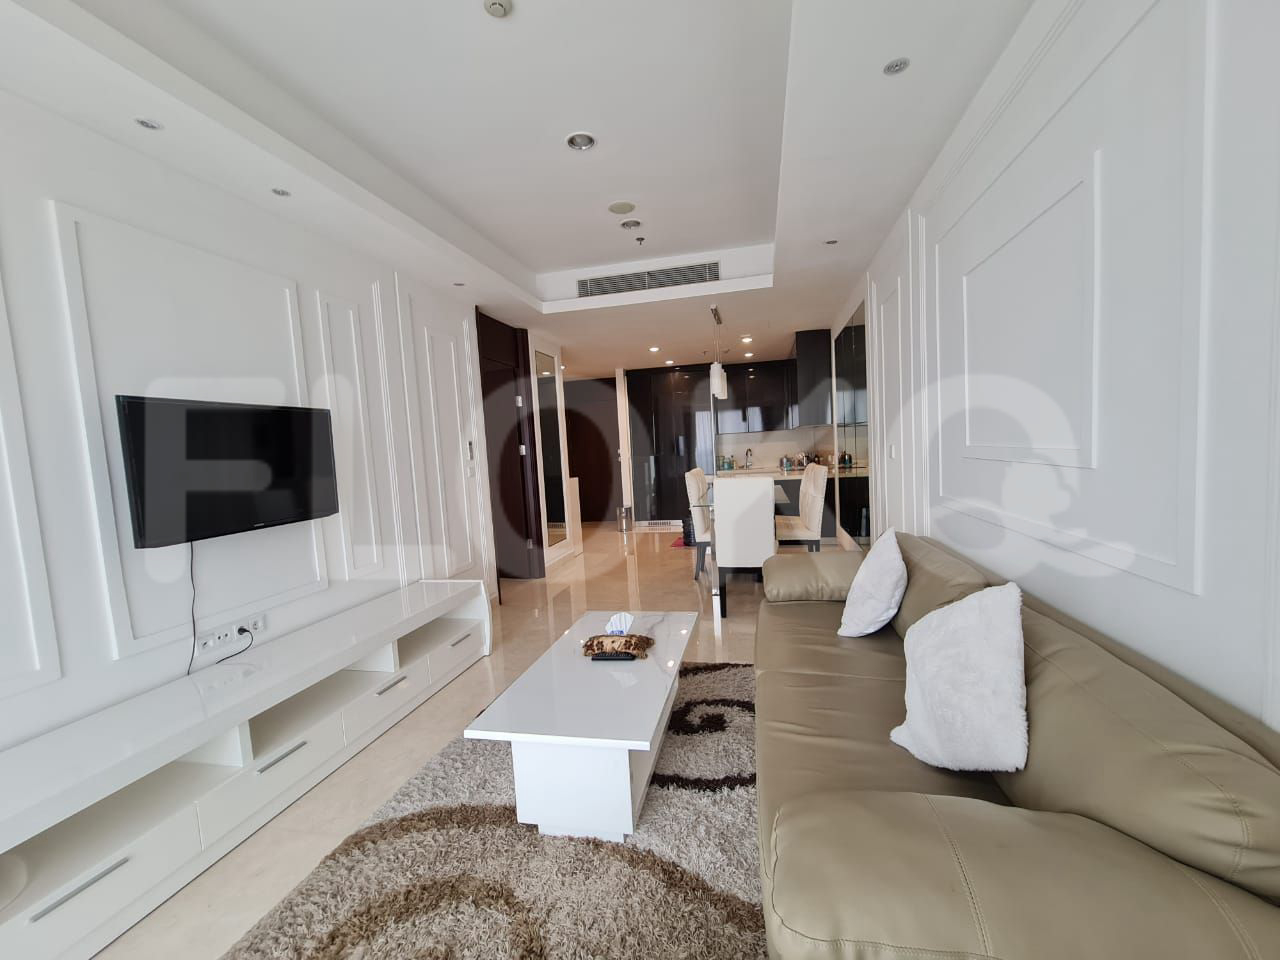 Rent 1 BR on 10th Floor, Pay Half Yearly, Pondok Indah Residence